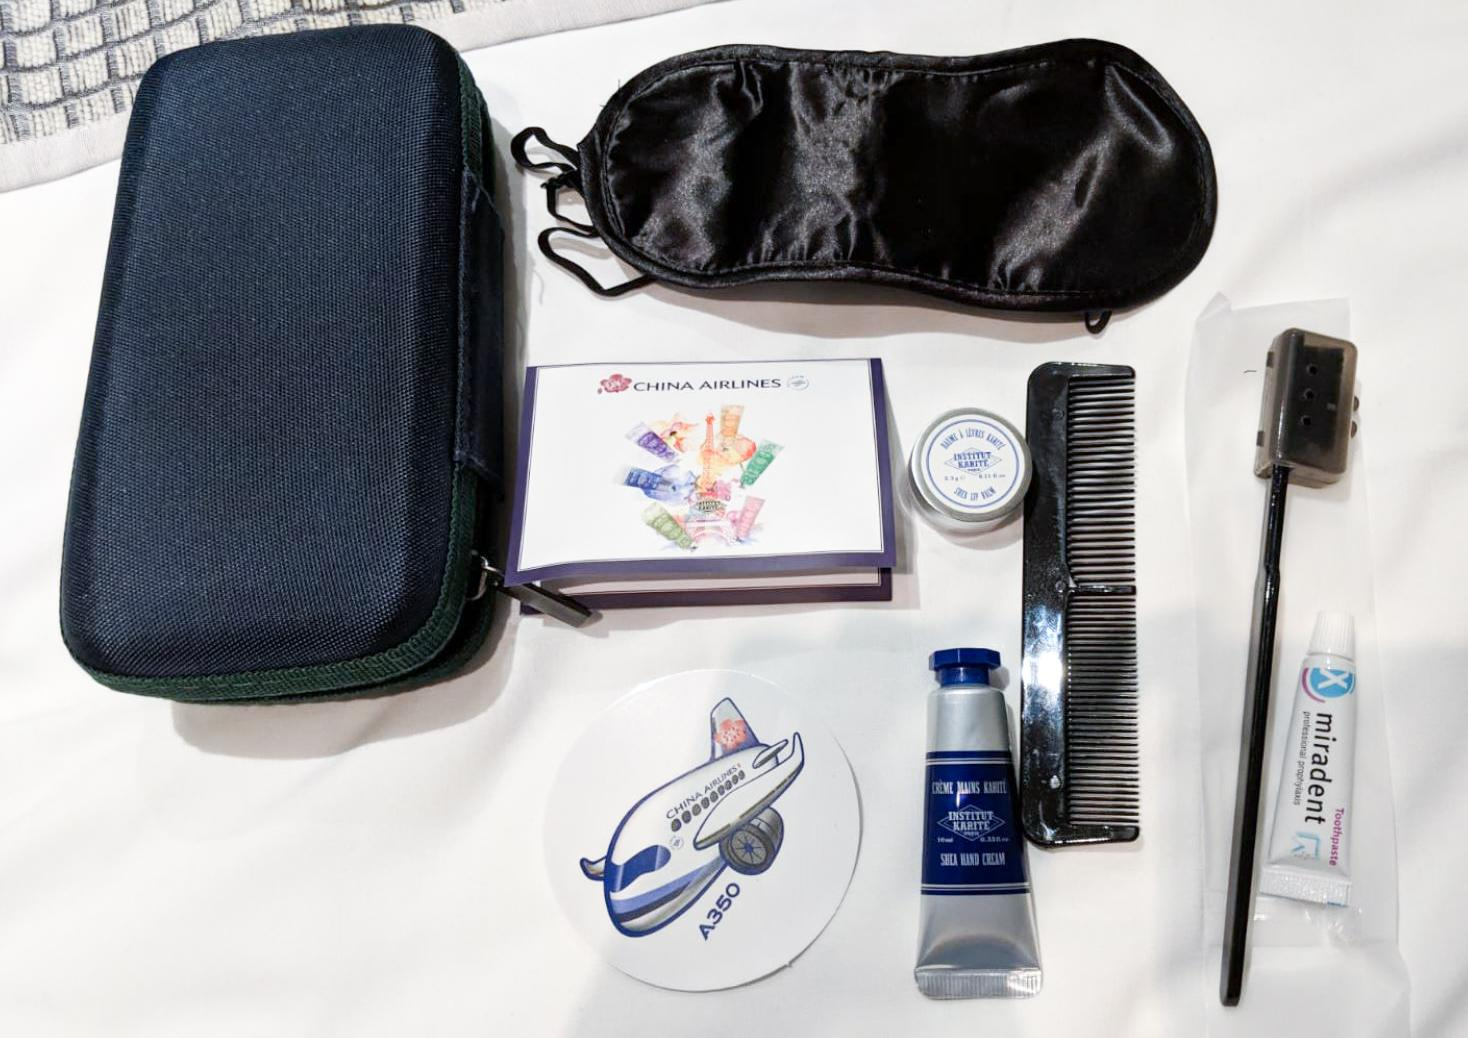 China Airlines A350 Premium Economy amenities